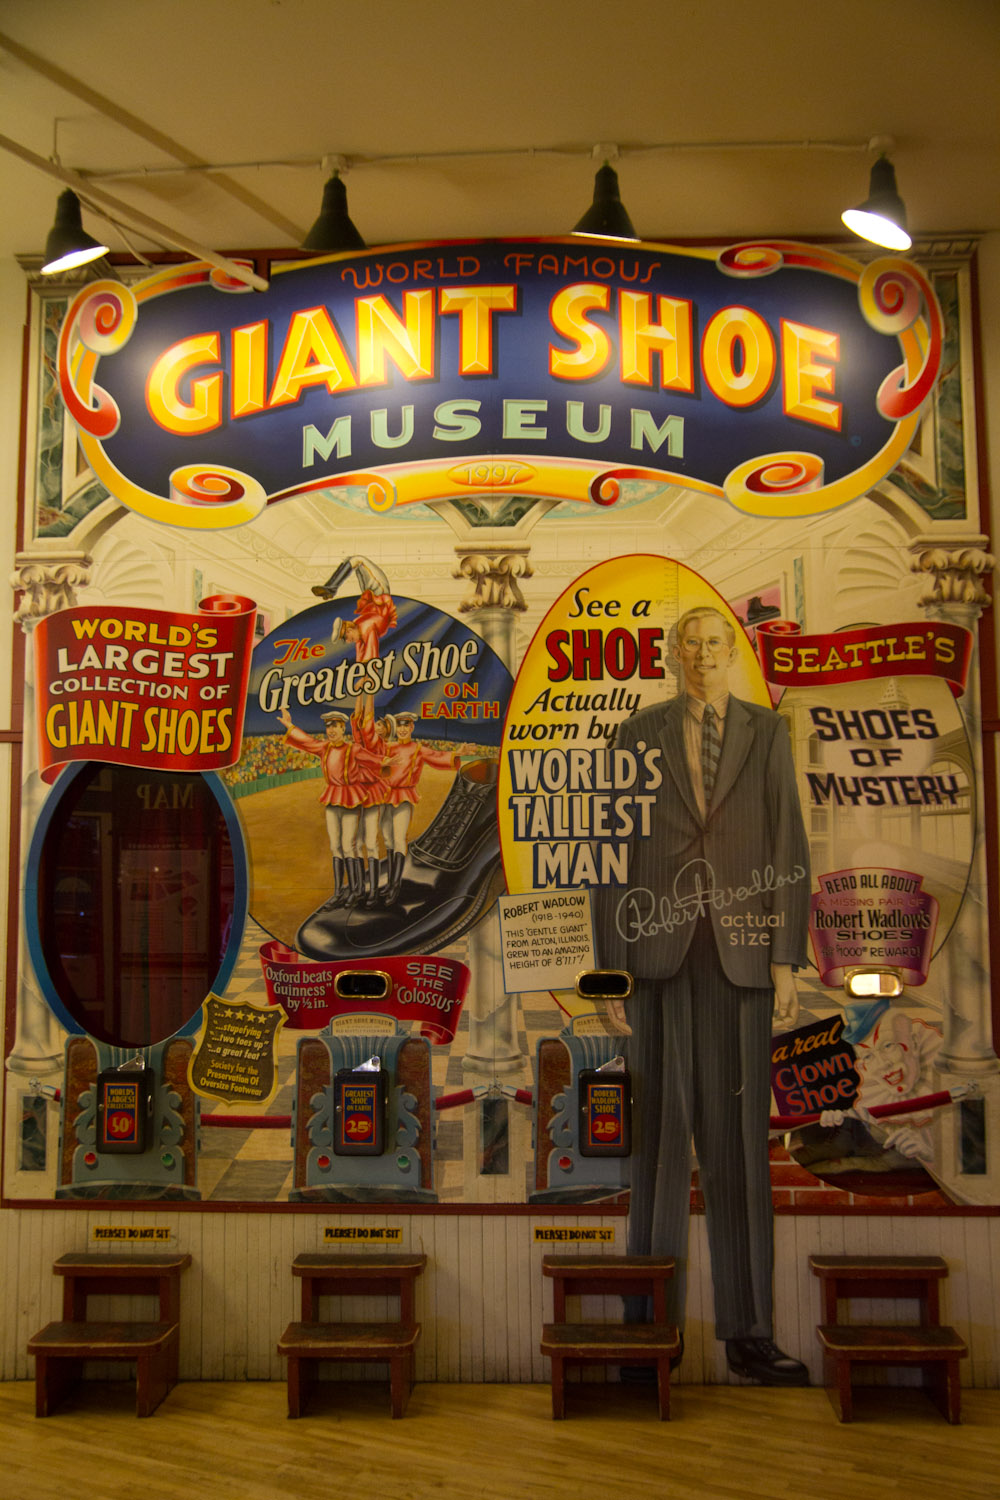 Museo de zapatos gigantes en el mercado de Pike Place, Seattle, EE.UU.